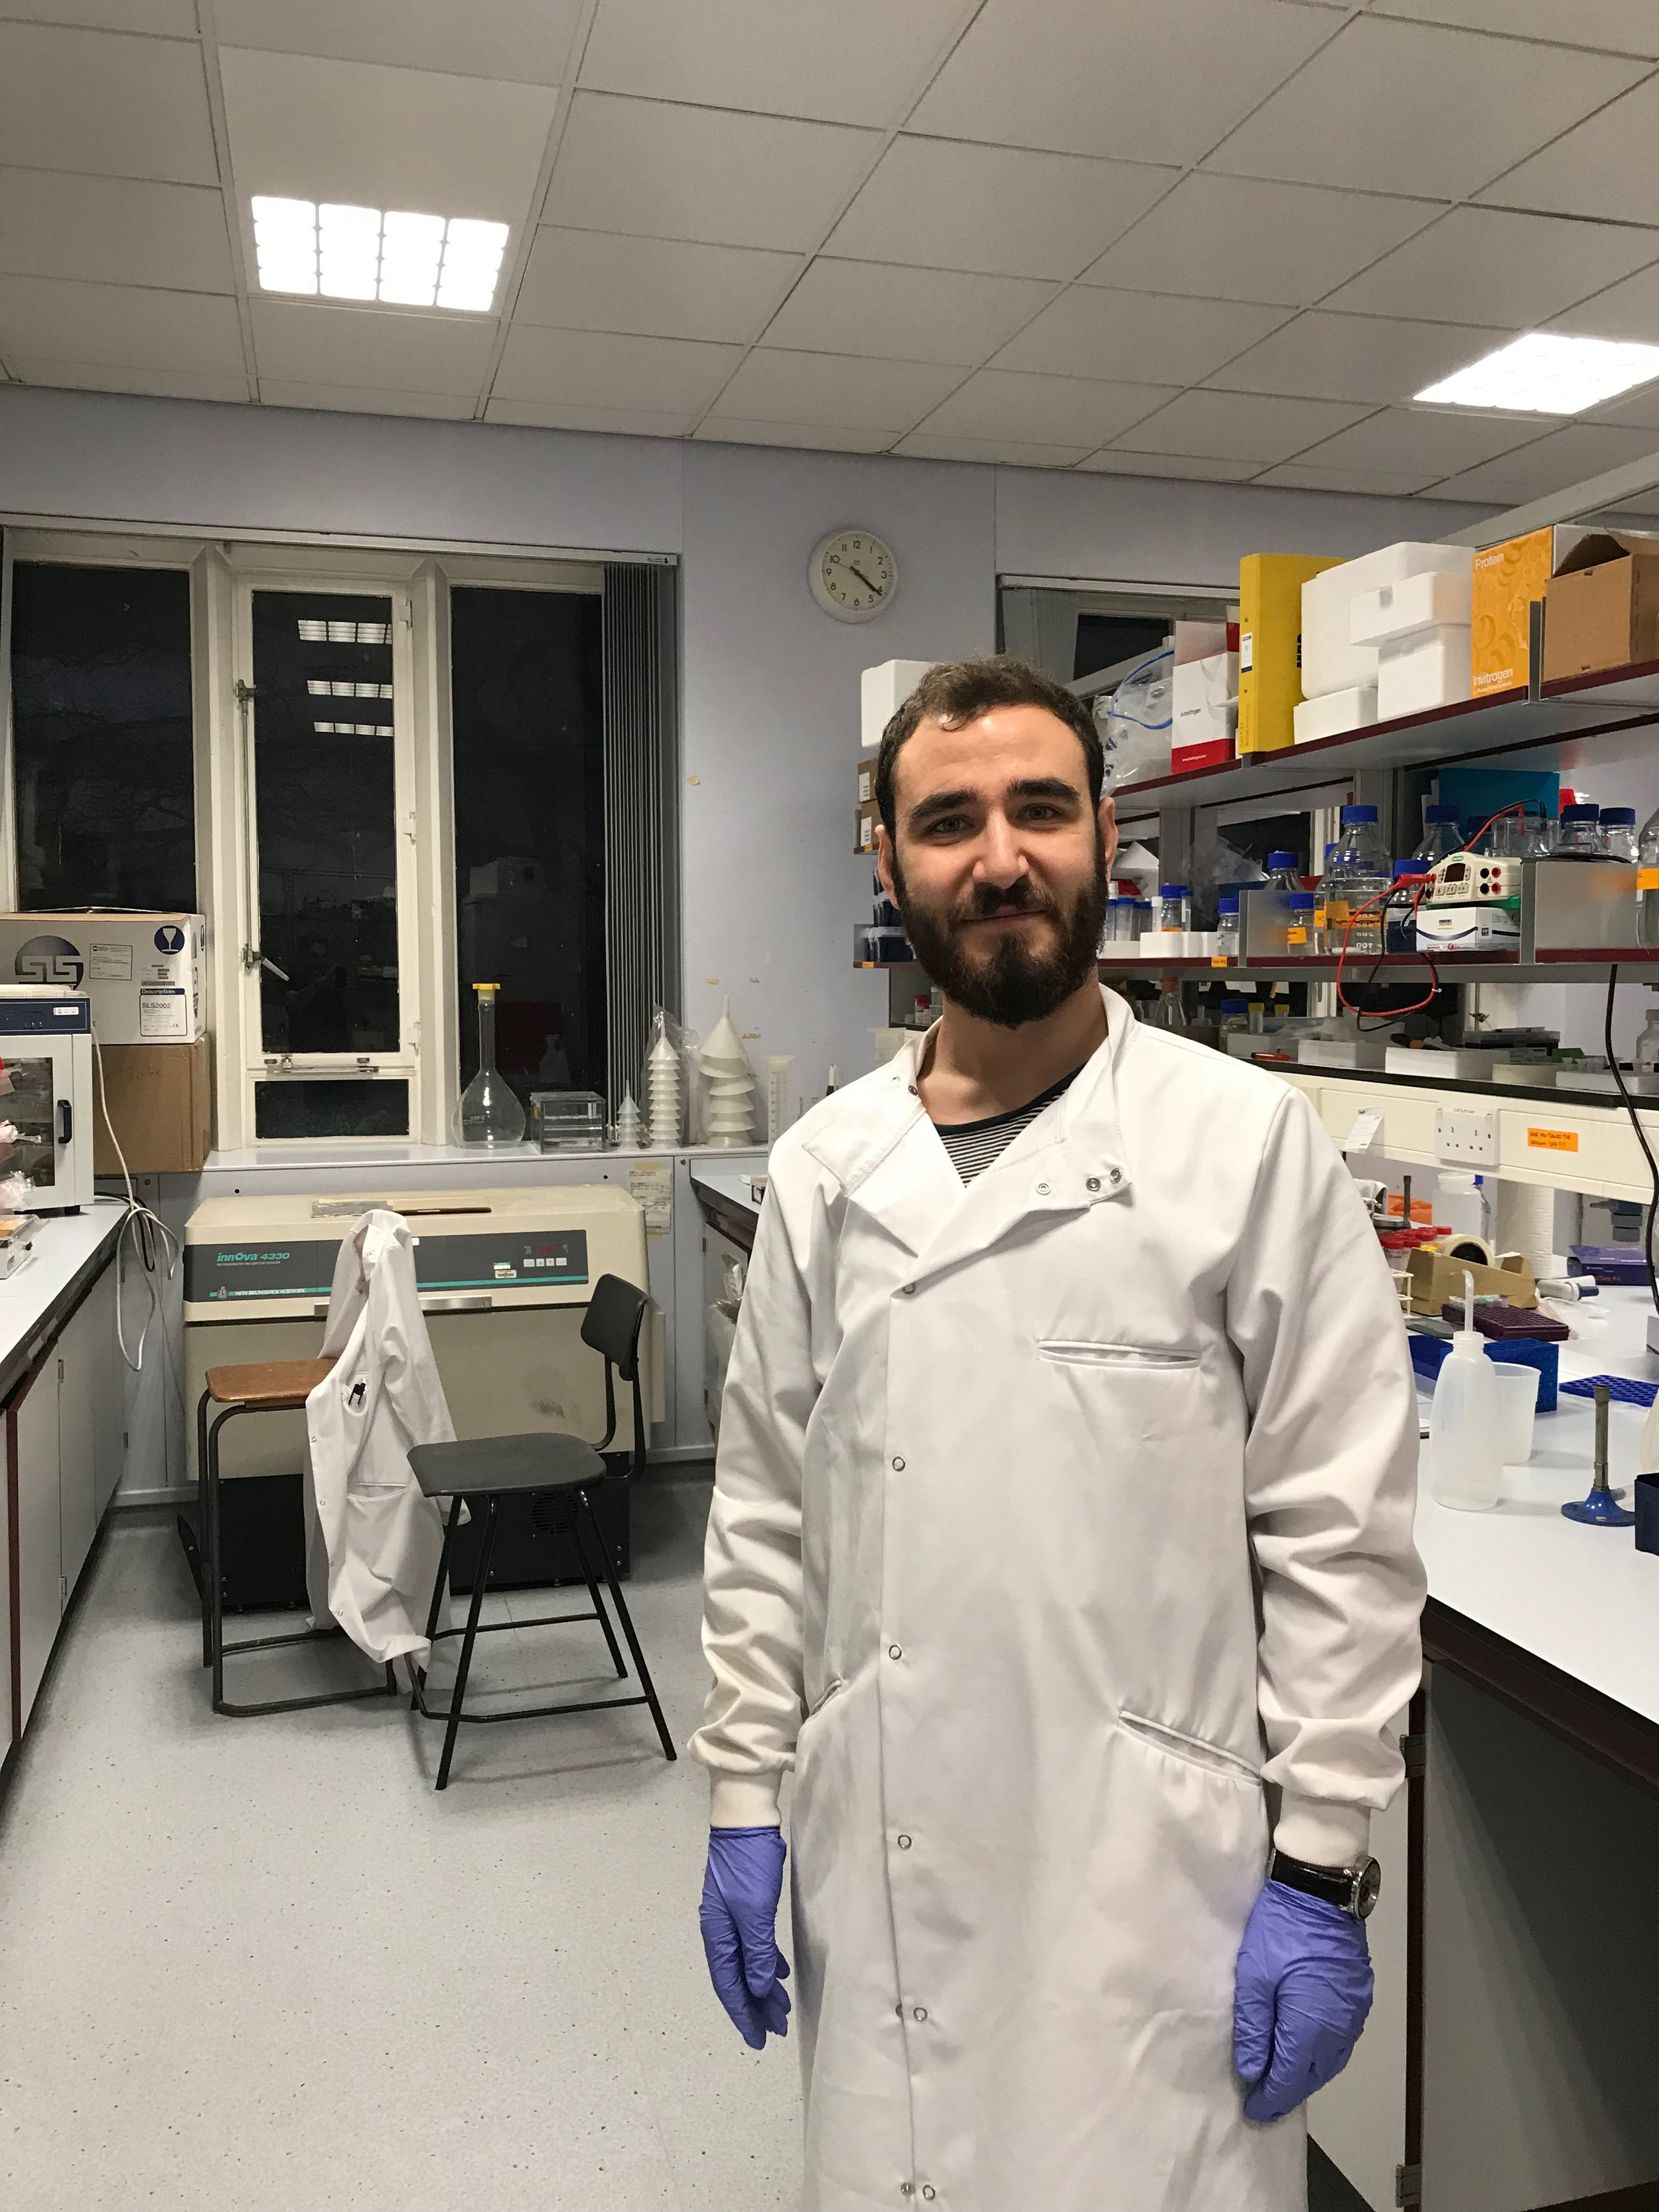 Christian Todaro - Christian joined the lab as a 4th Year MBiolSci student, following on from a 3 year undergraduate at the University of Sheffield. Christian is originally from just down the road in Derby, and will be working on in vitro assembly of transcriptional co-actvator complexes. In his spare time he is actively involved in charity work with the University students union.Since Graduating, Chris has been travelling around Australia.